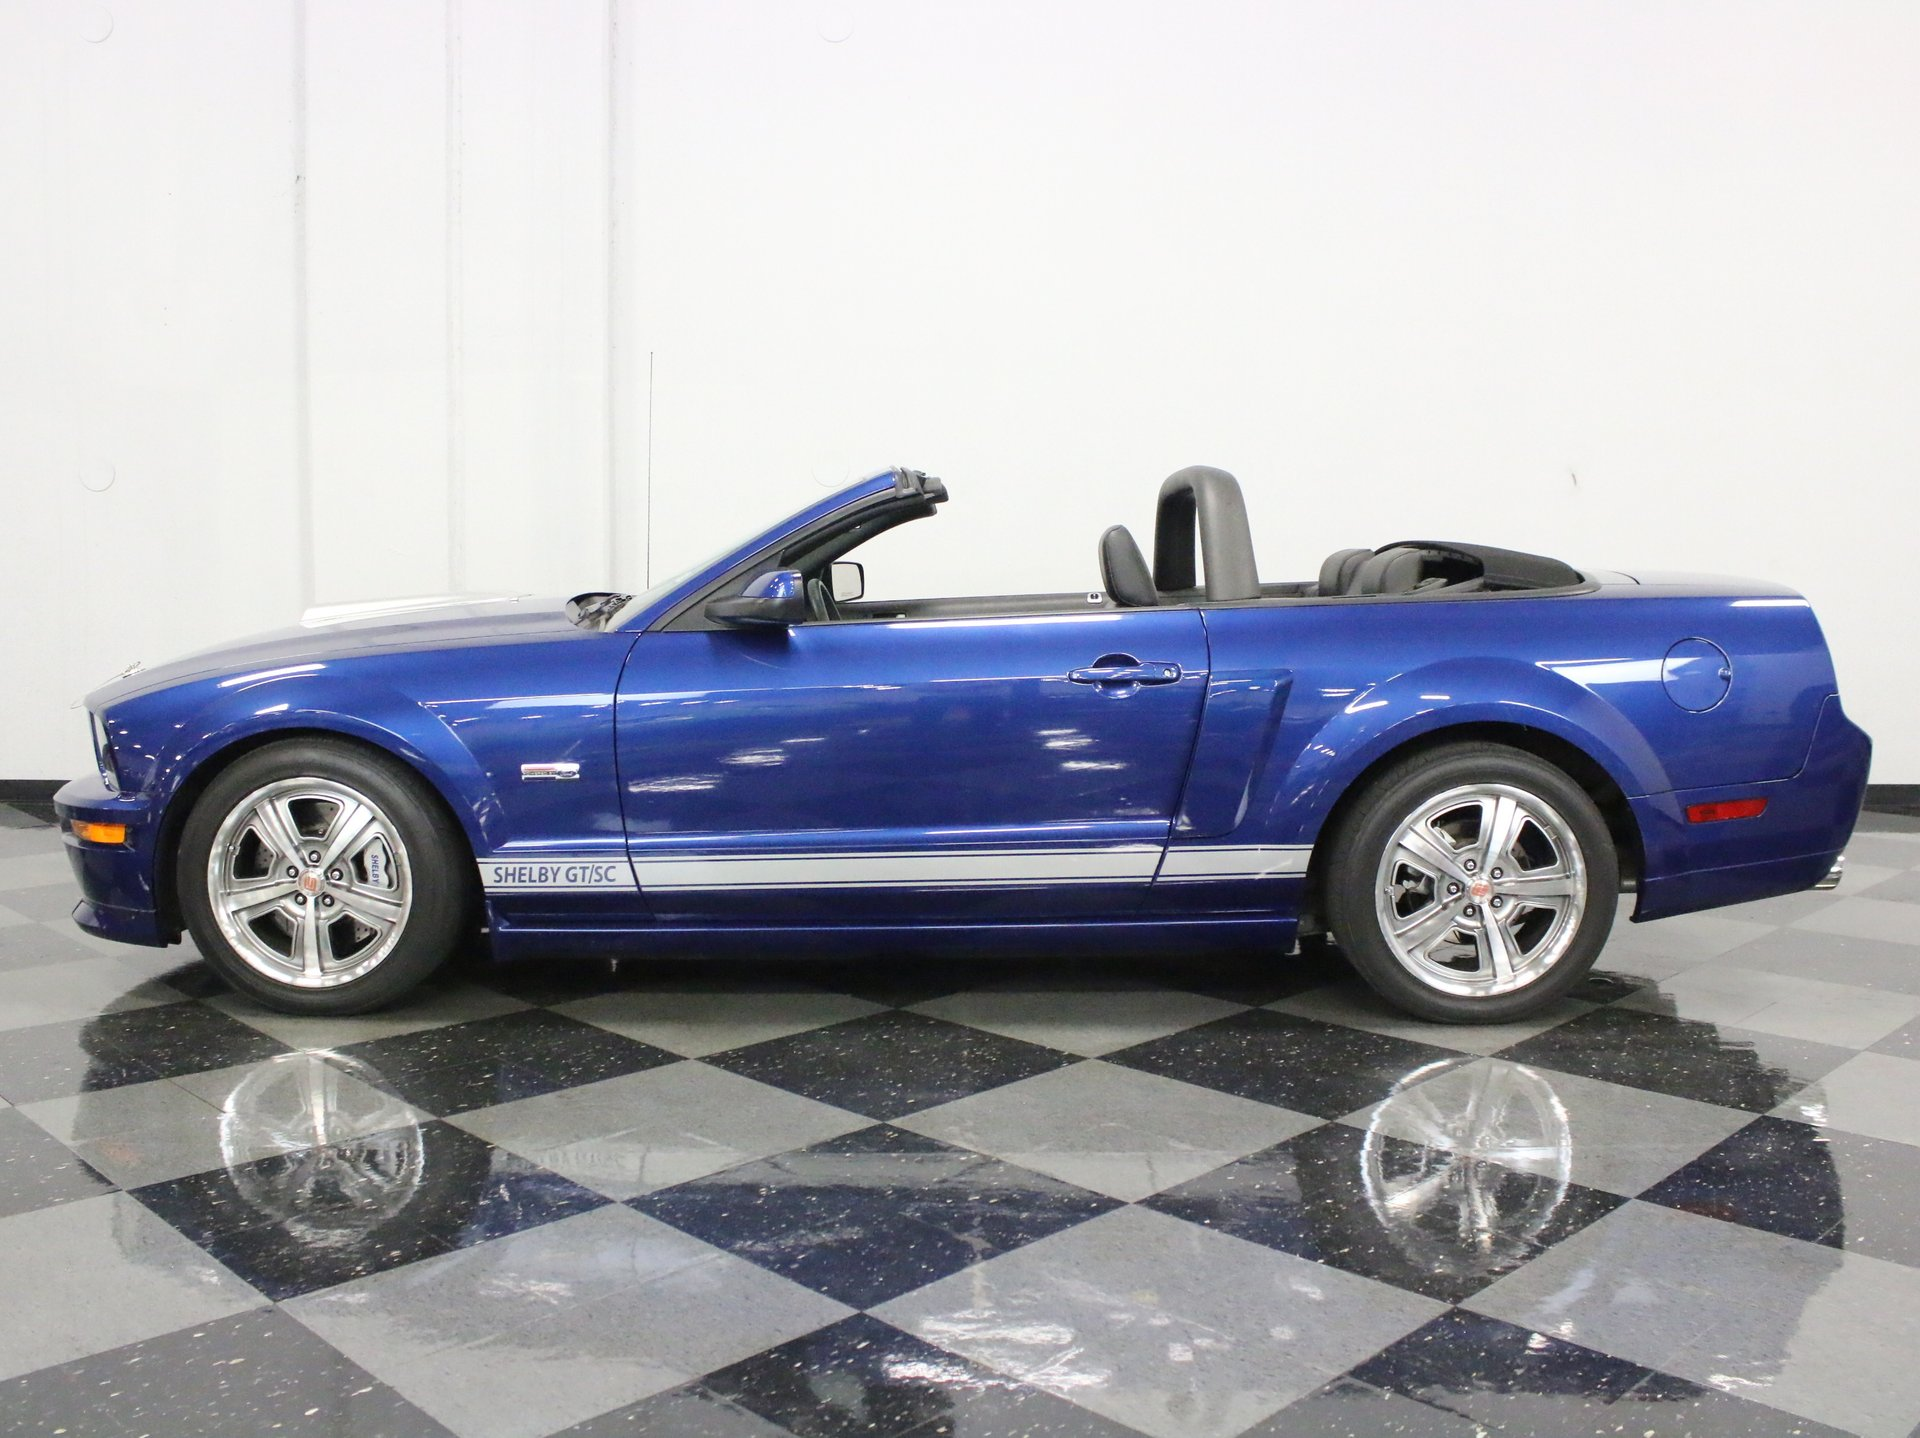 2008 ford mustang shelby gt sc